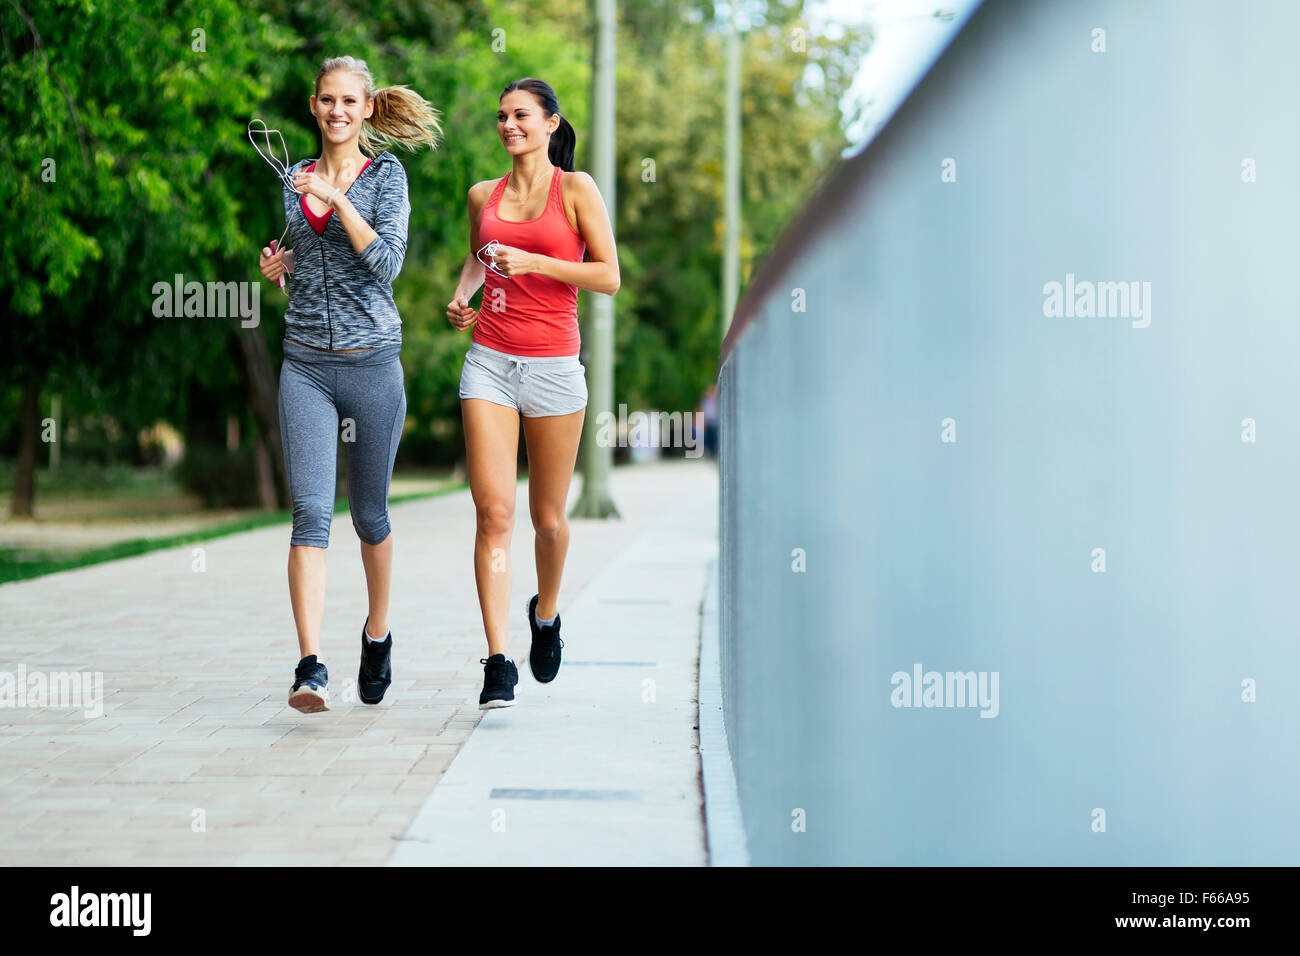 Two women exercising by jogging in city - Stock Image